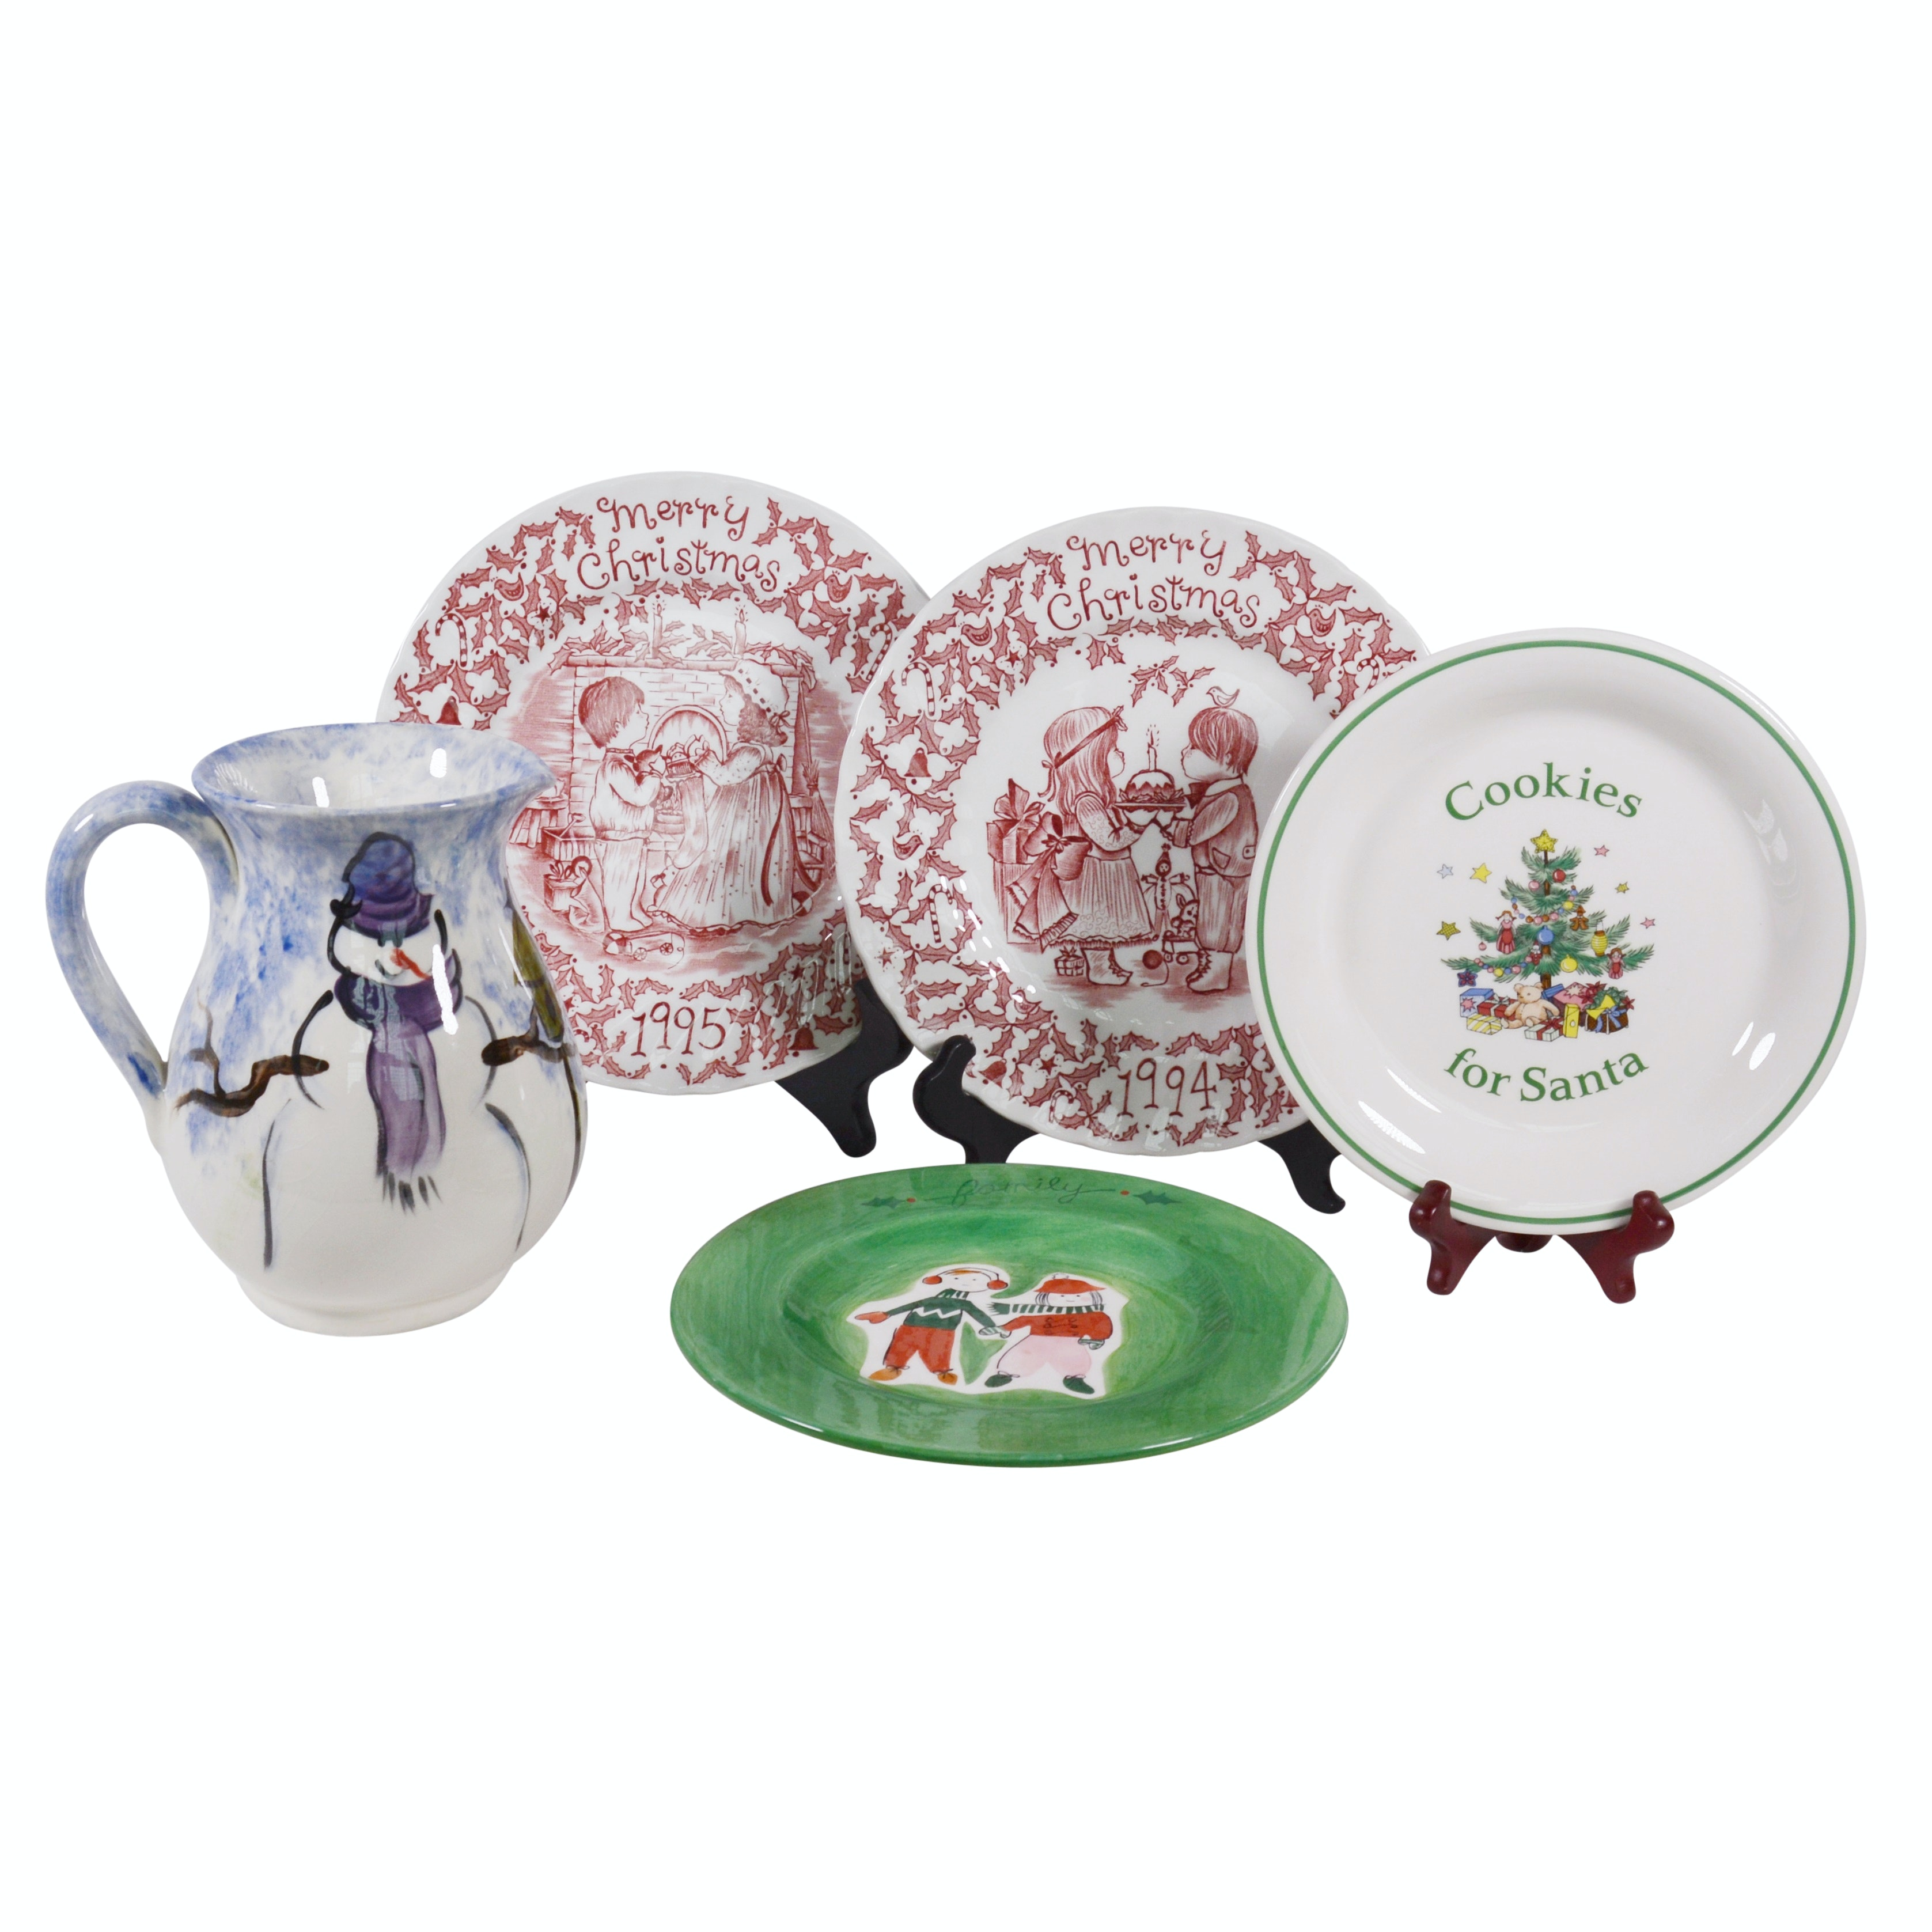 Christmas Ceramic Plates and Snowman Pitcher